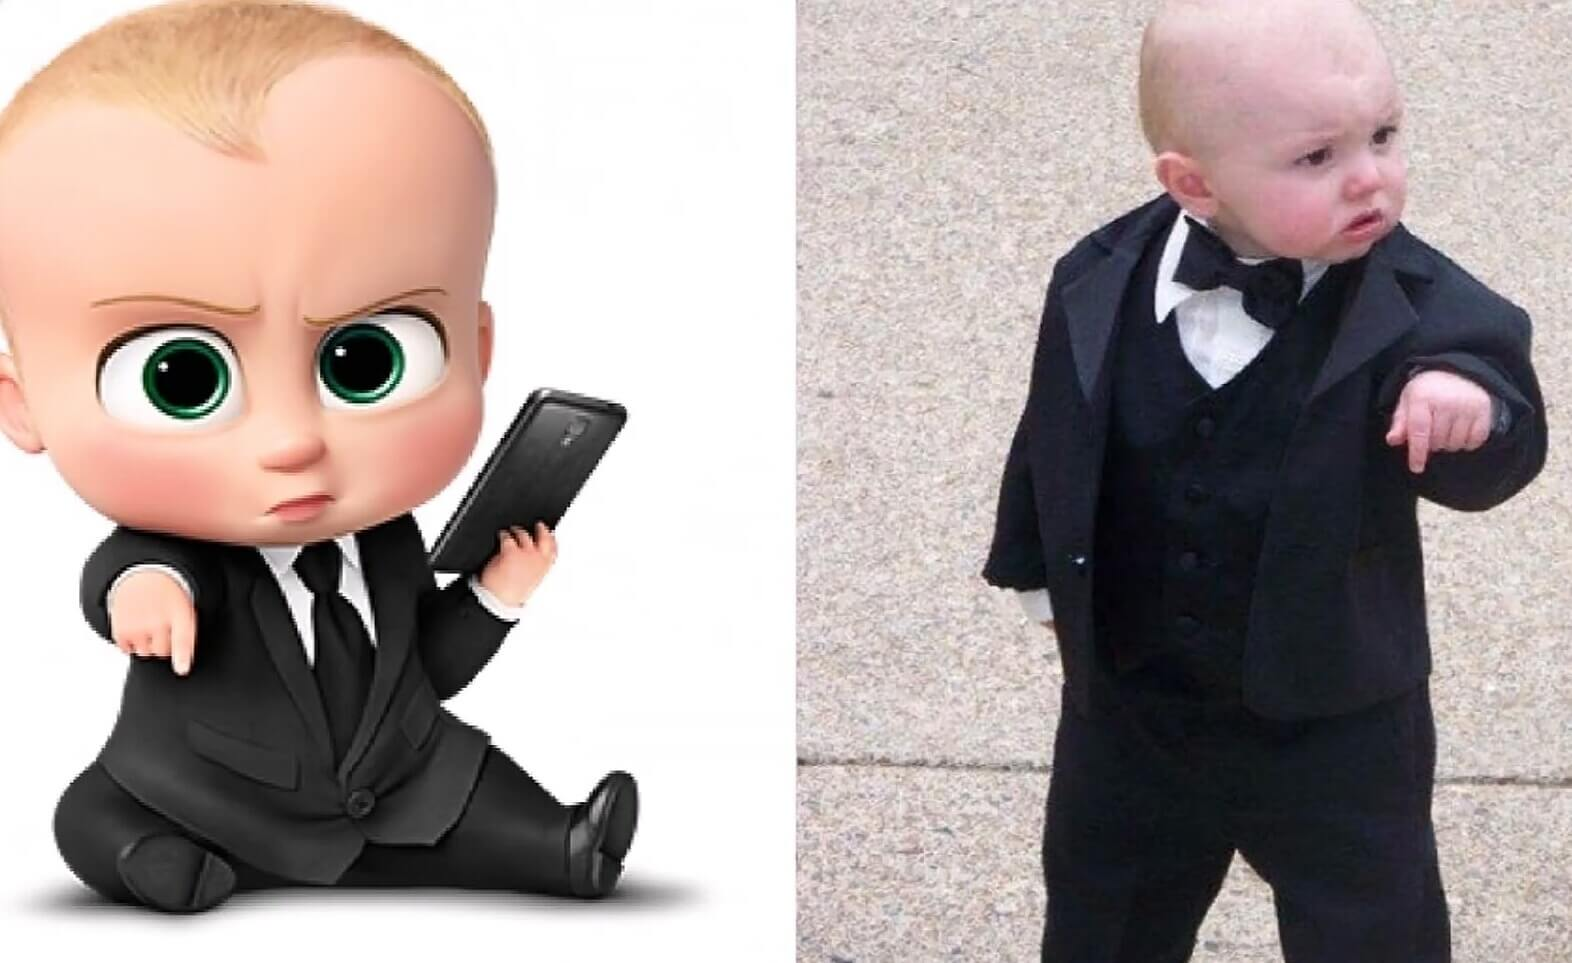 20 Amazing Cosplays That Look Extremely Similar To The Original Cartoons - The world is going to be ruled by babies!